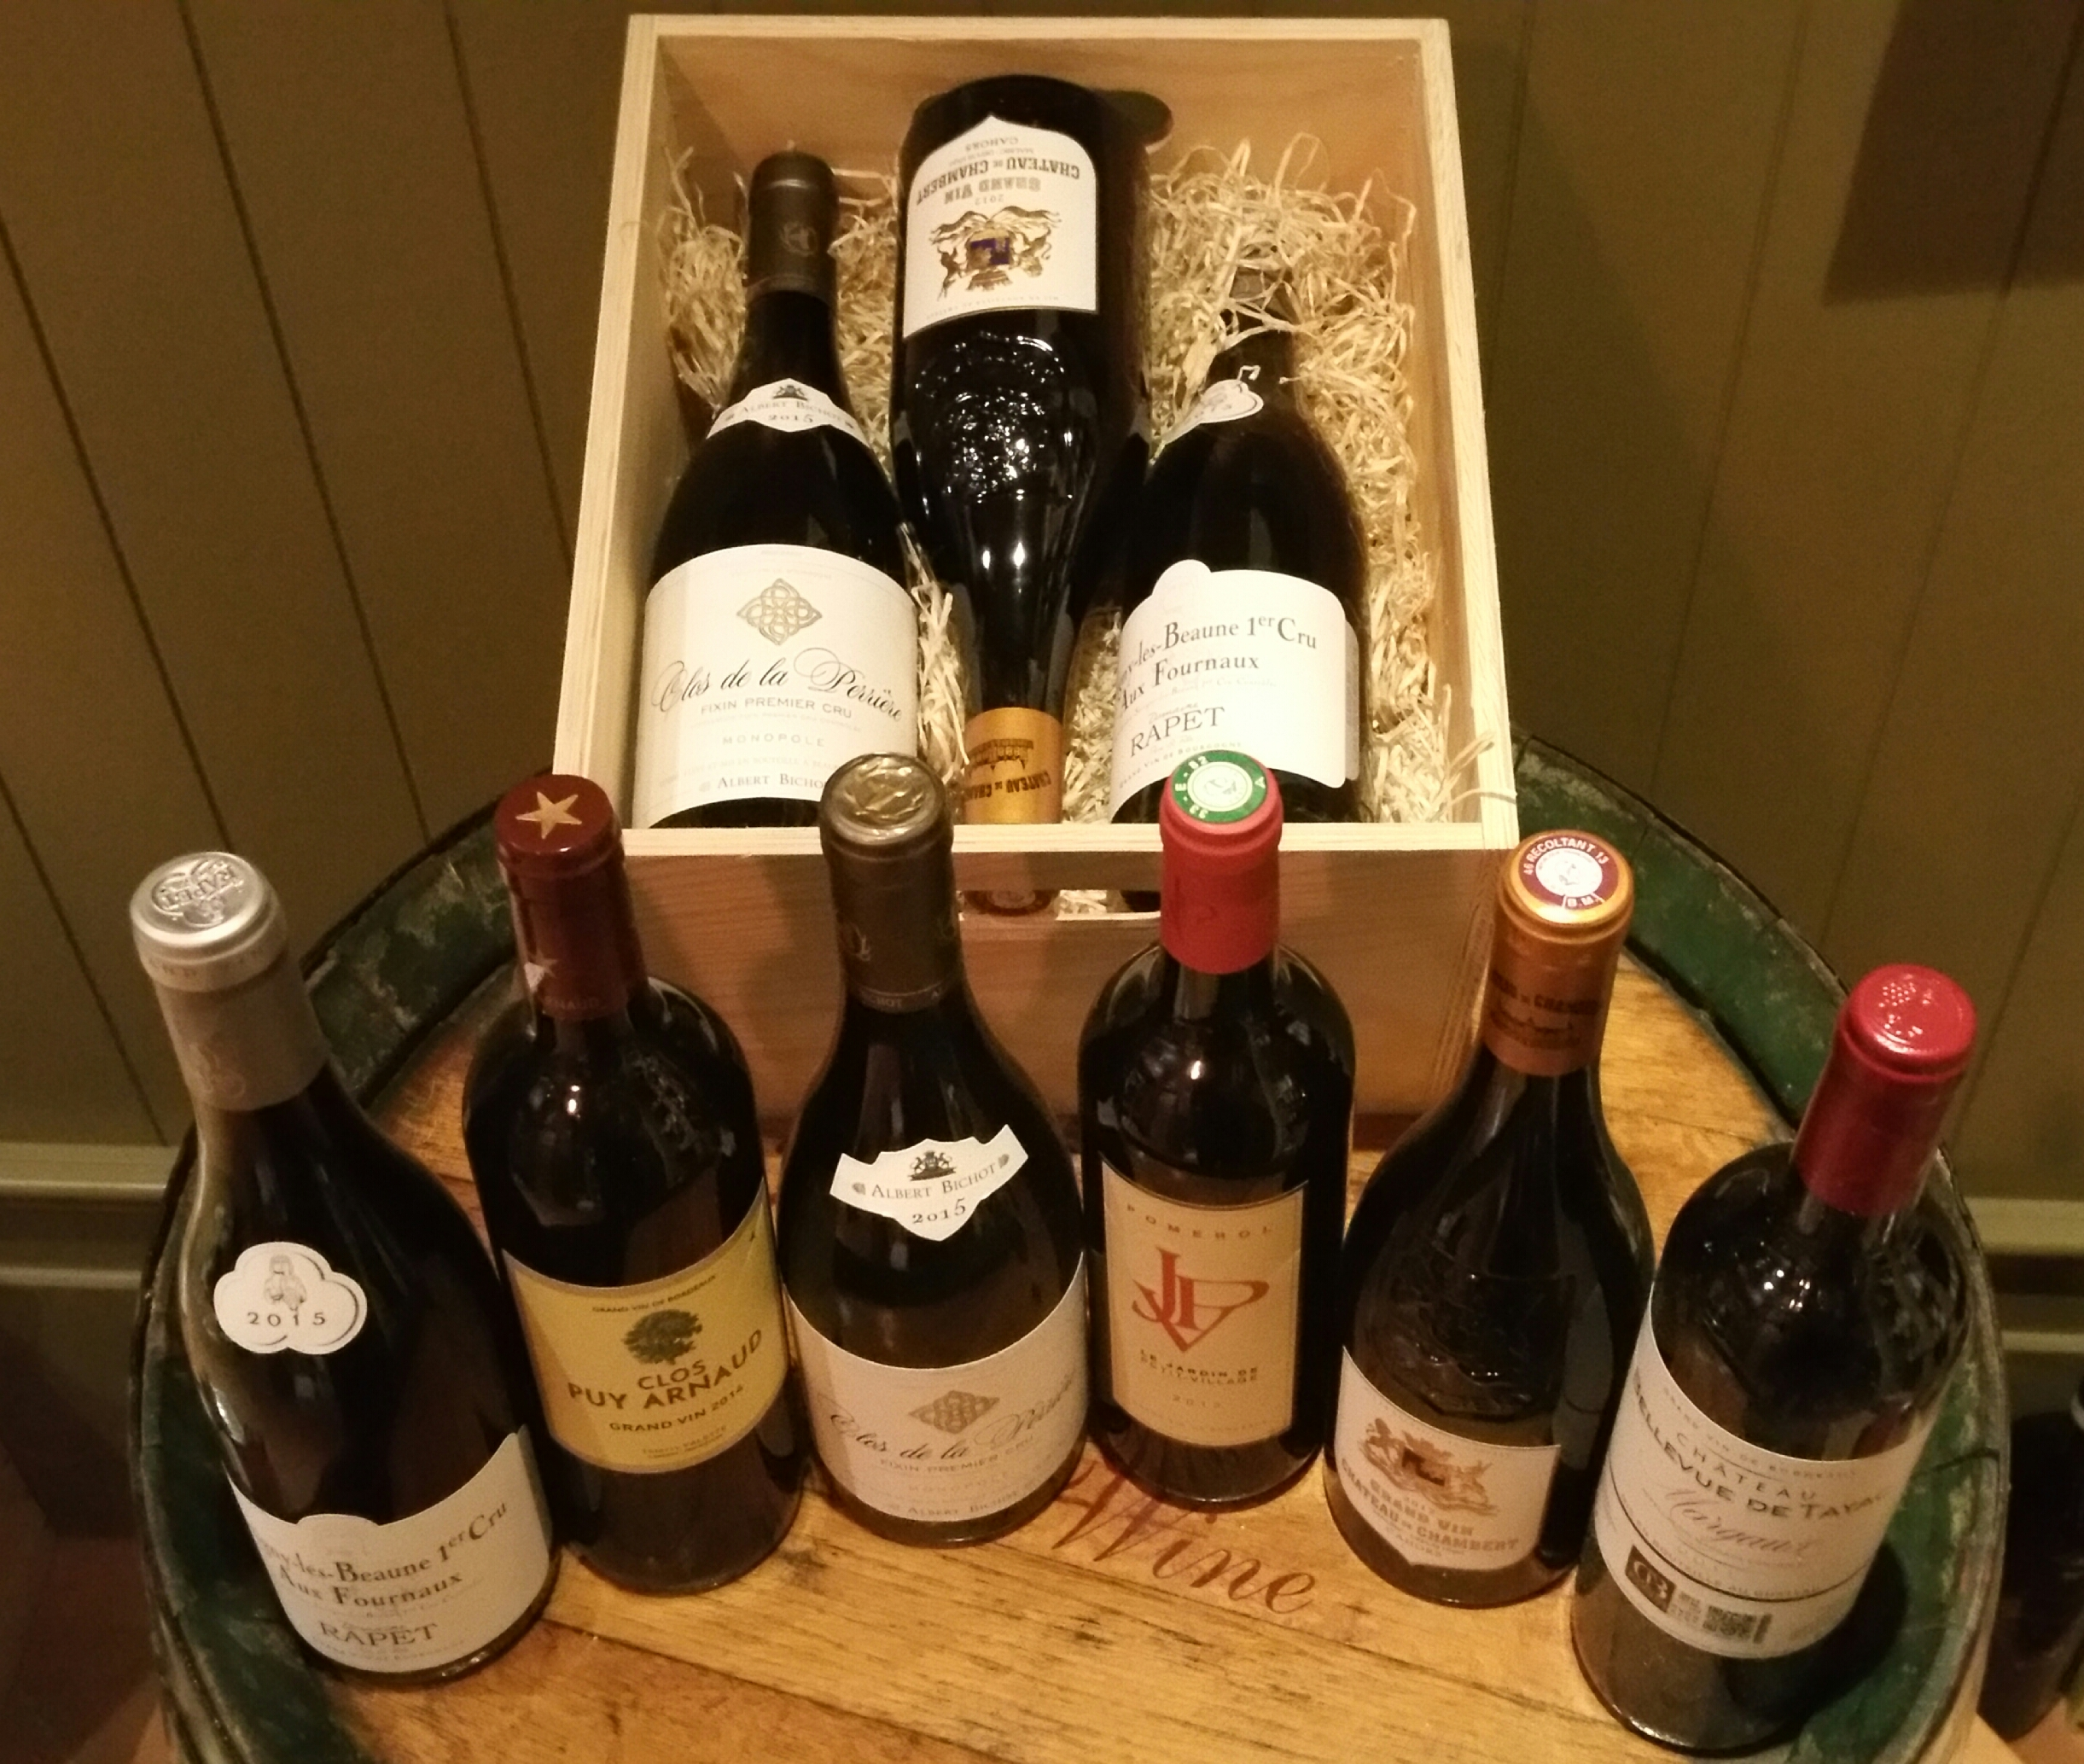 Gold - A Bordeaux/Burgundy beauty. Six great wines from great vintages, presented in a wooden box. ?360